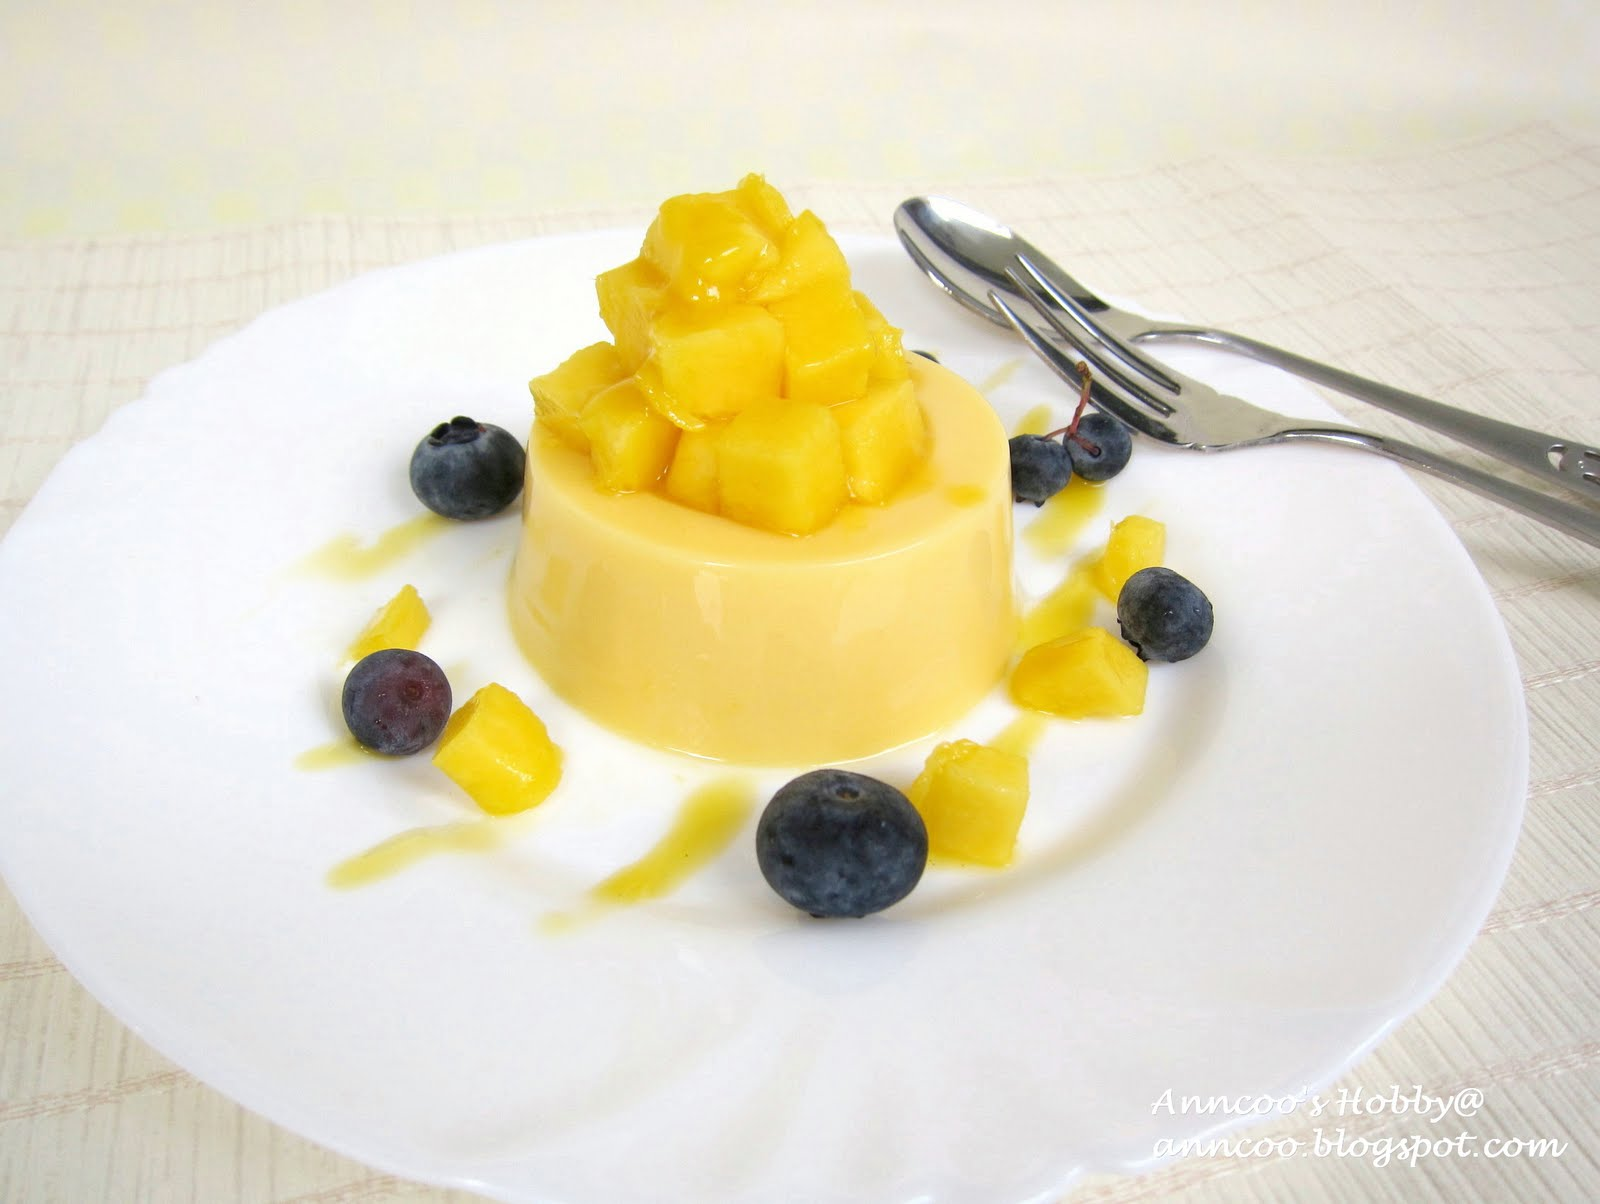 Mango Pudding 芒果布丁 | Anncoo Journal - Come for Quick and Easy ...